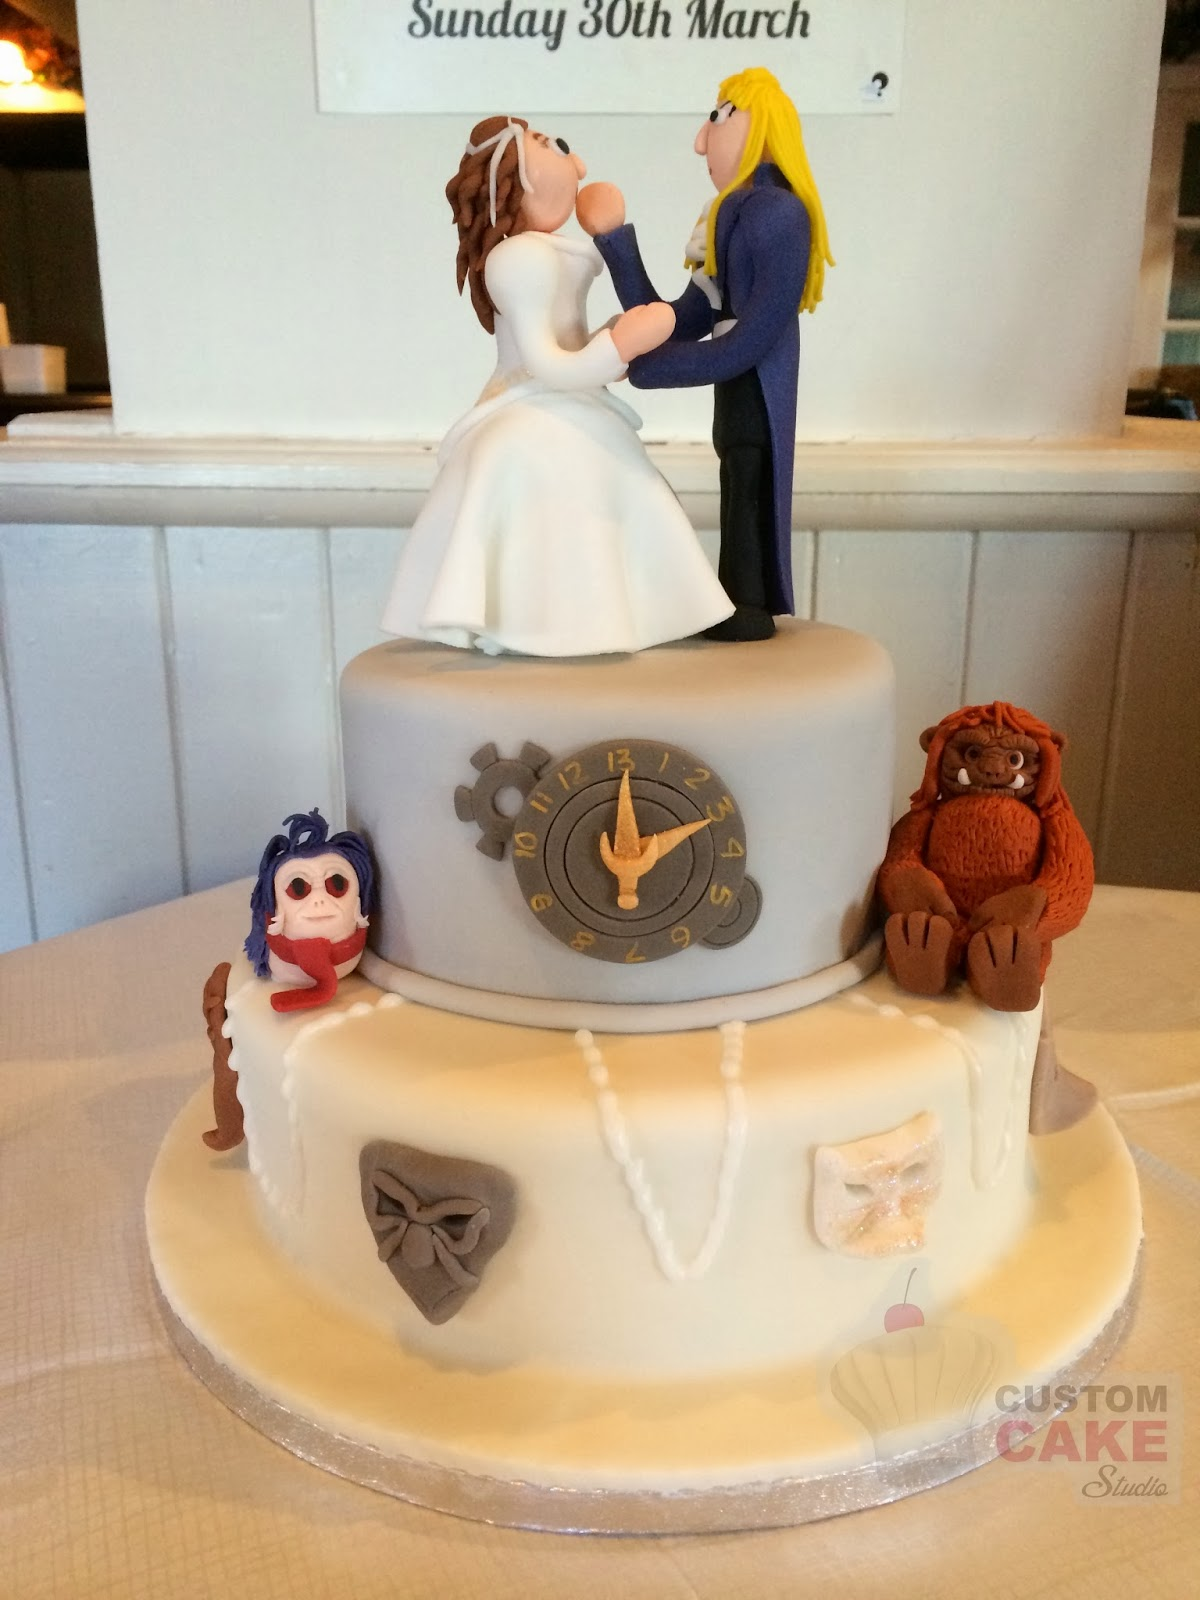 What An Awesome Cake Labyrinth Wedding Cake